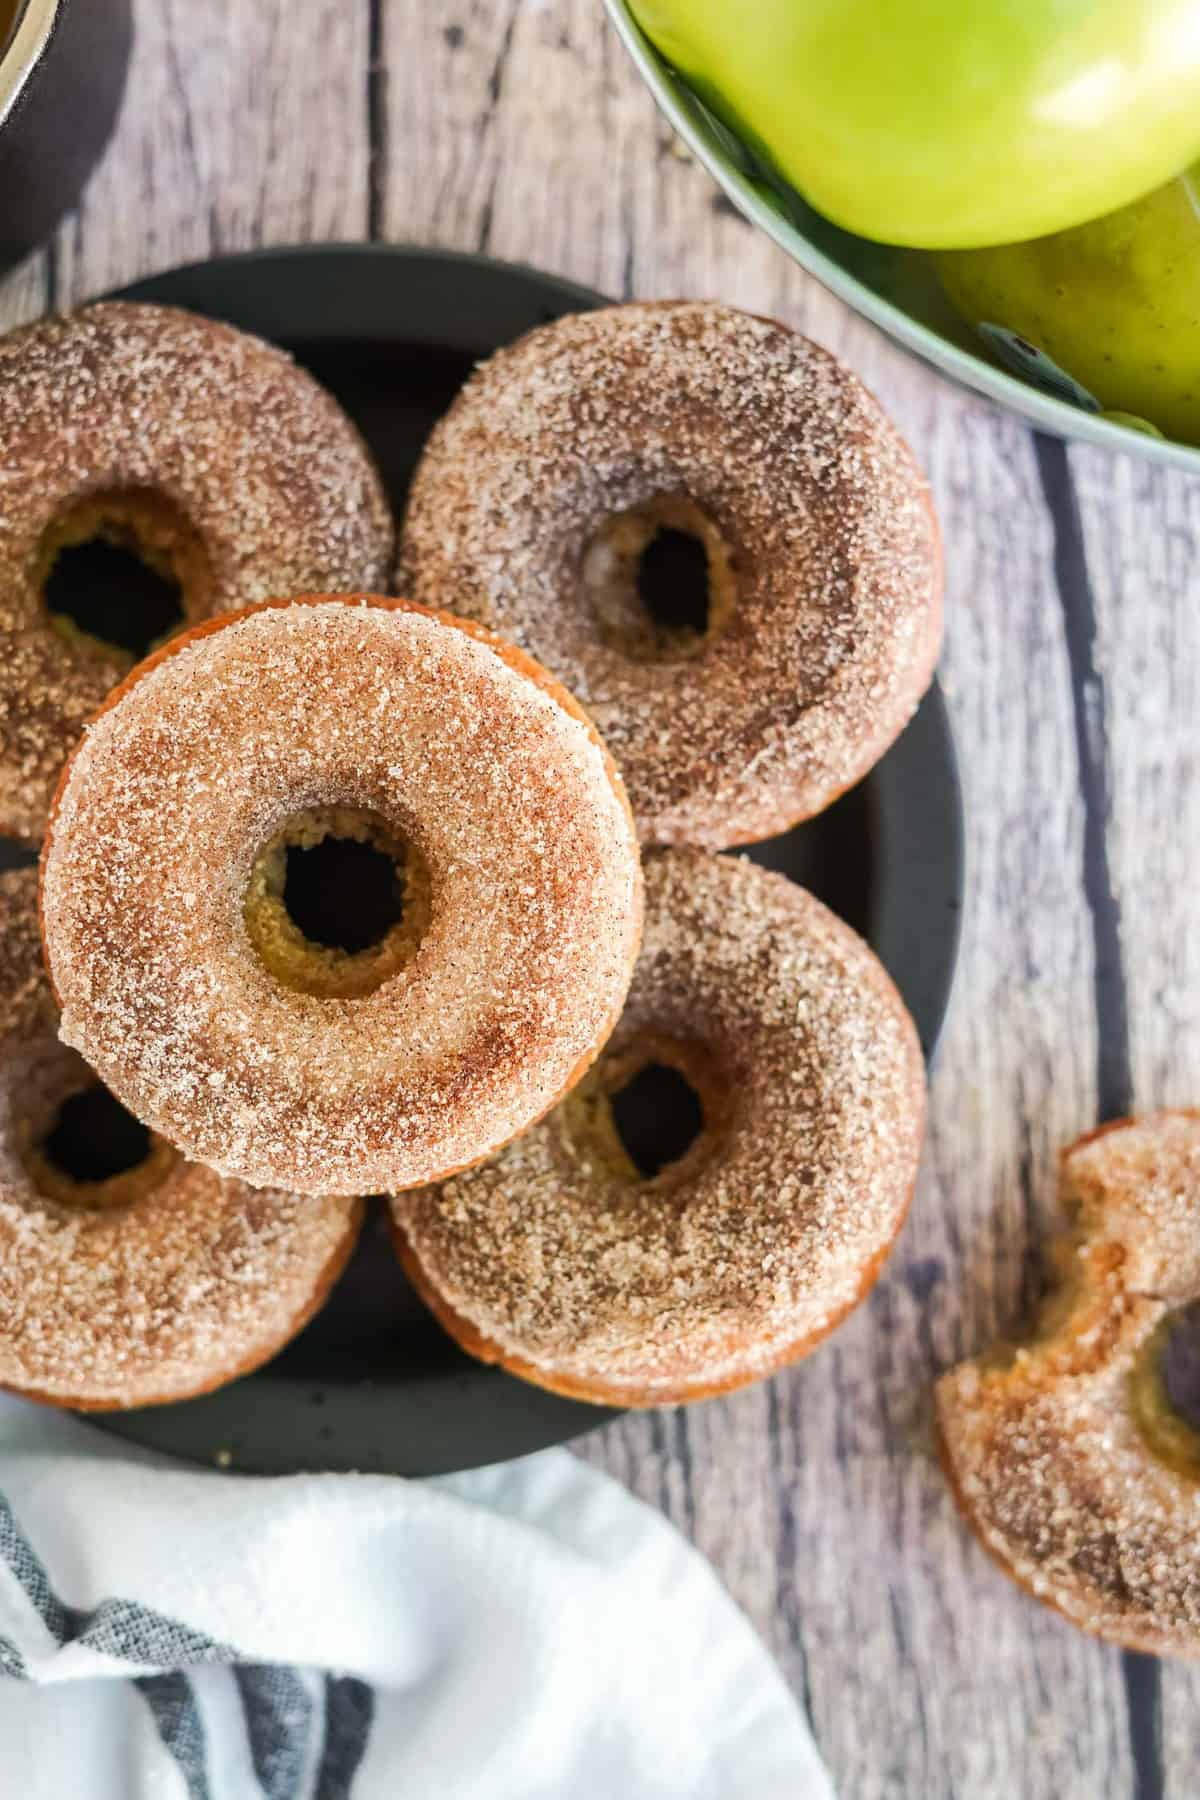 Overhead view of 5 cinnamon sugar dusted donuts on a black plate.